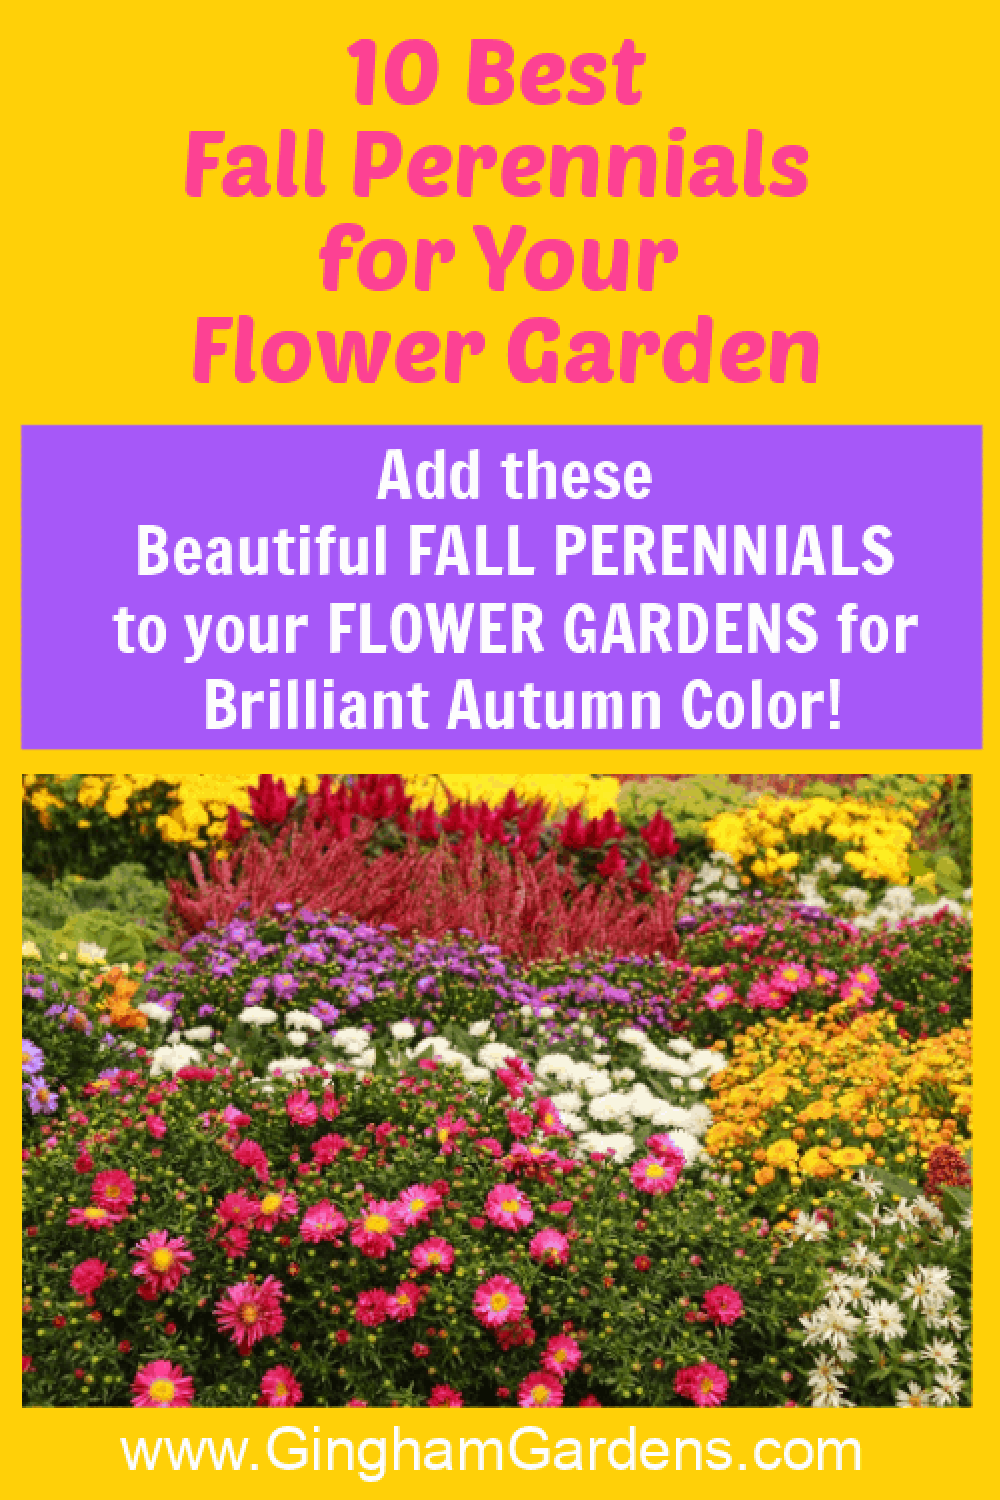 Images of Fall Flowers with text overlay - 10 Best Fall Perennials